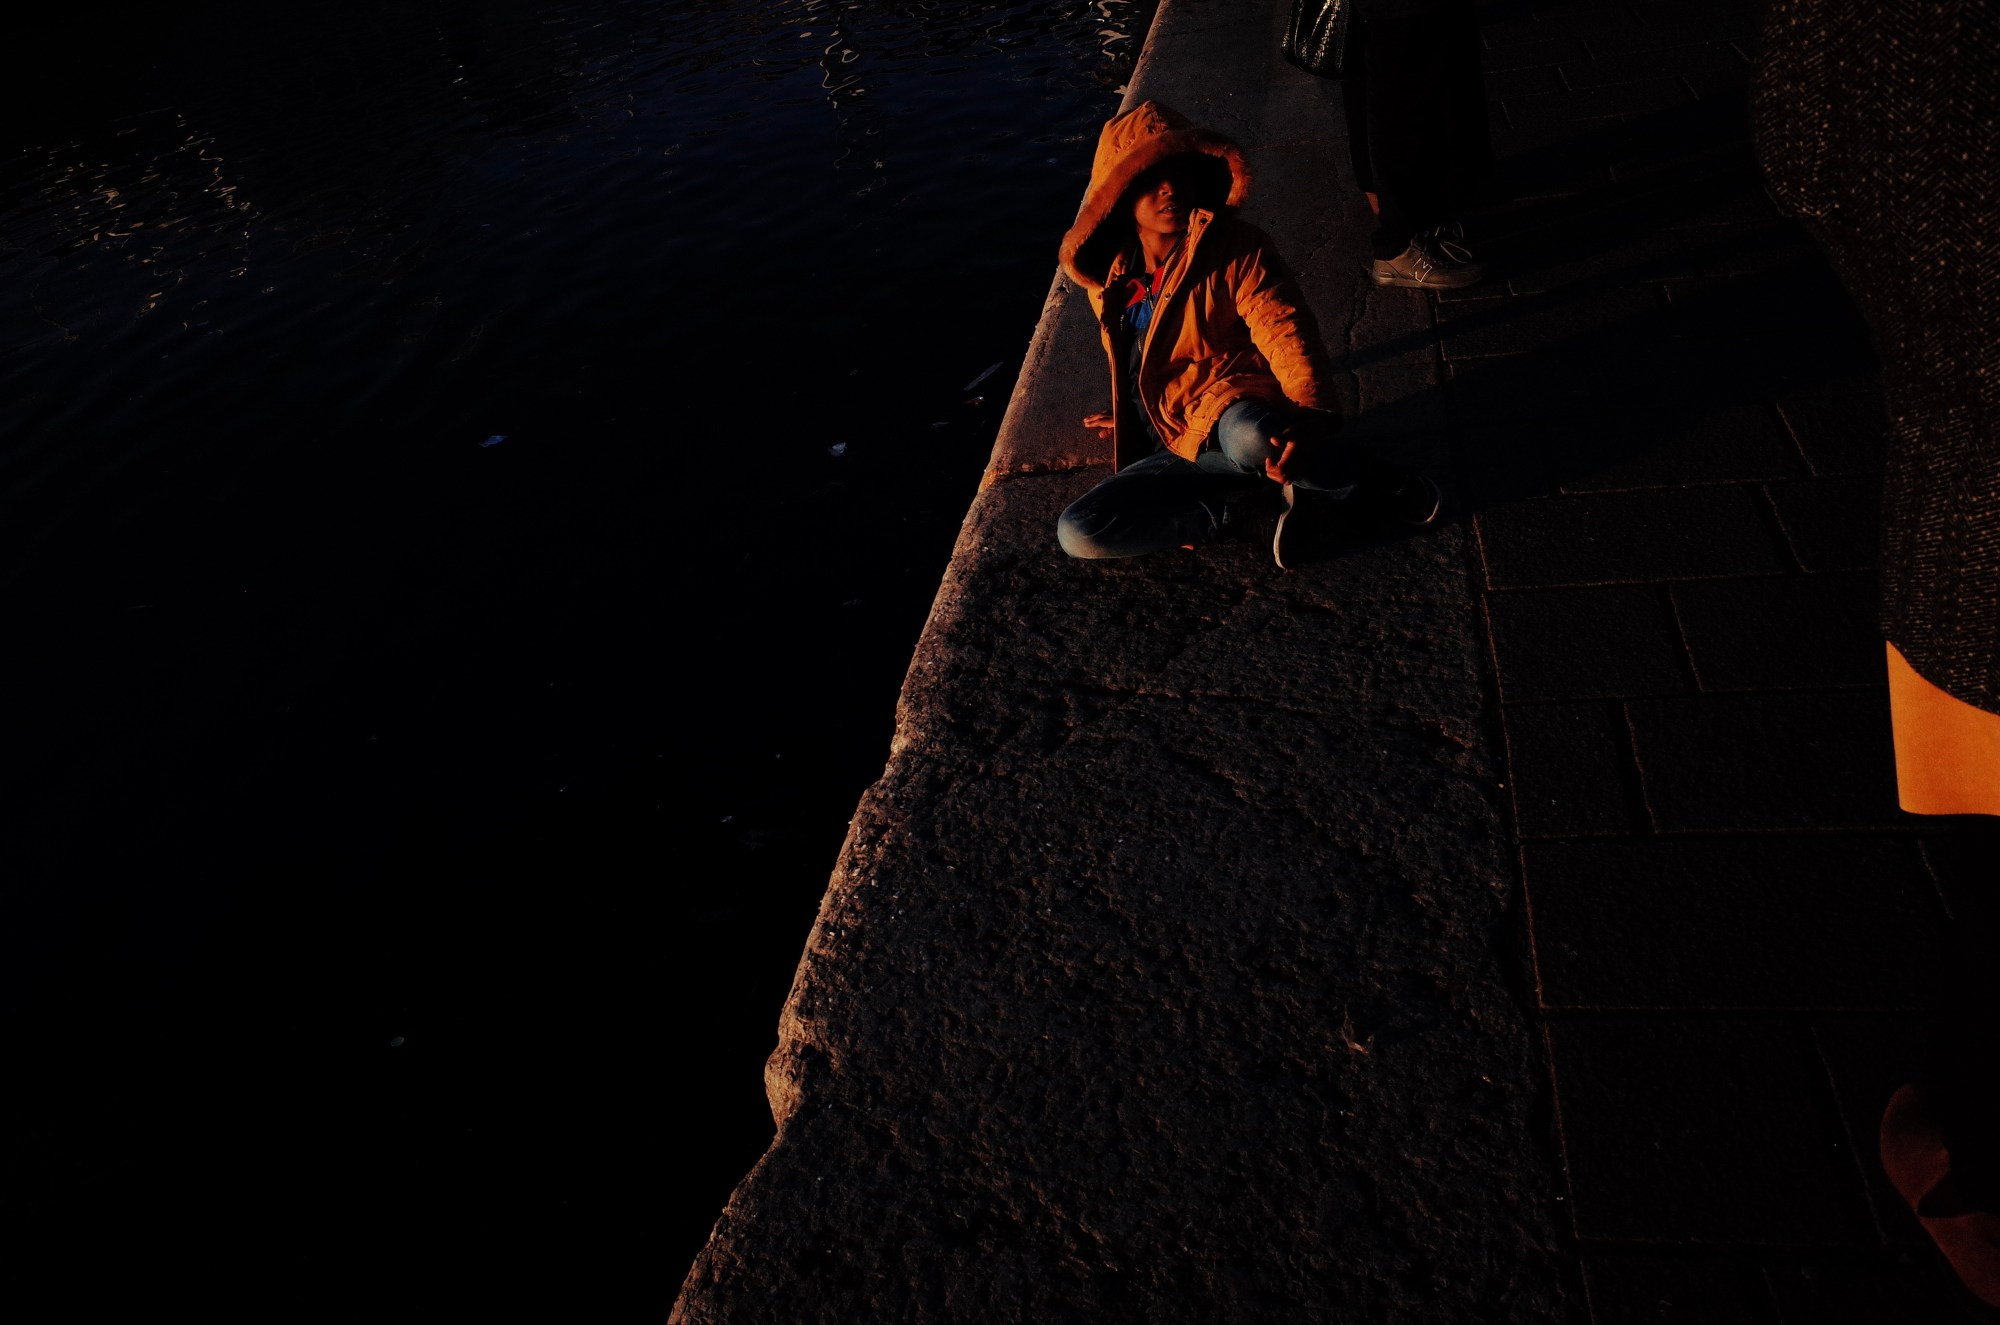 Golden hour, boy in orange jacket by water. Marseille, 2017